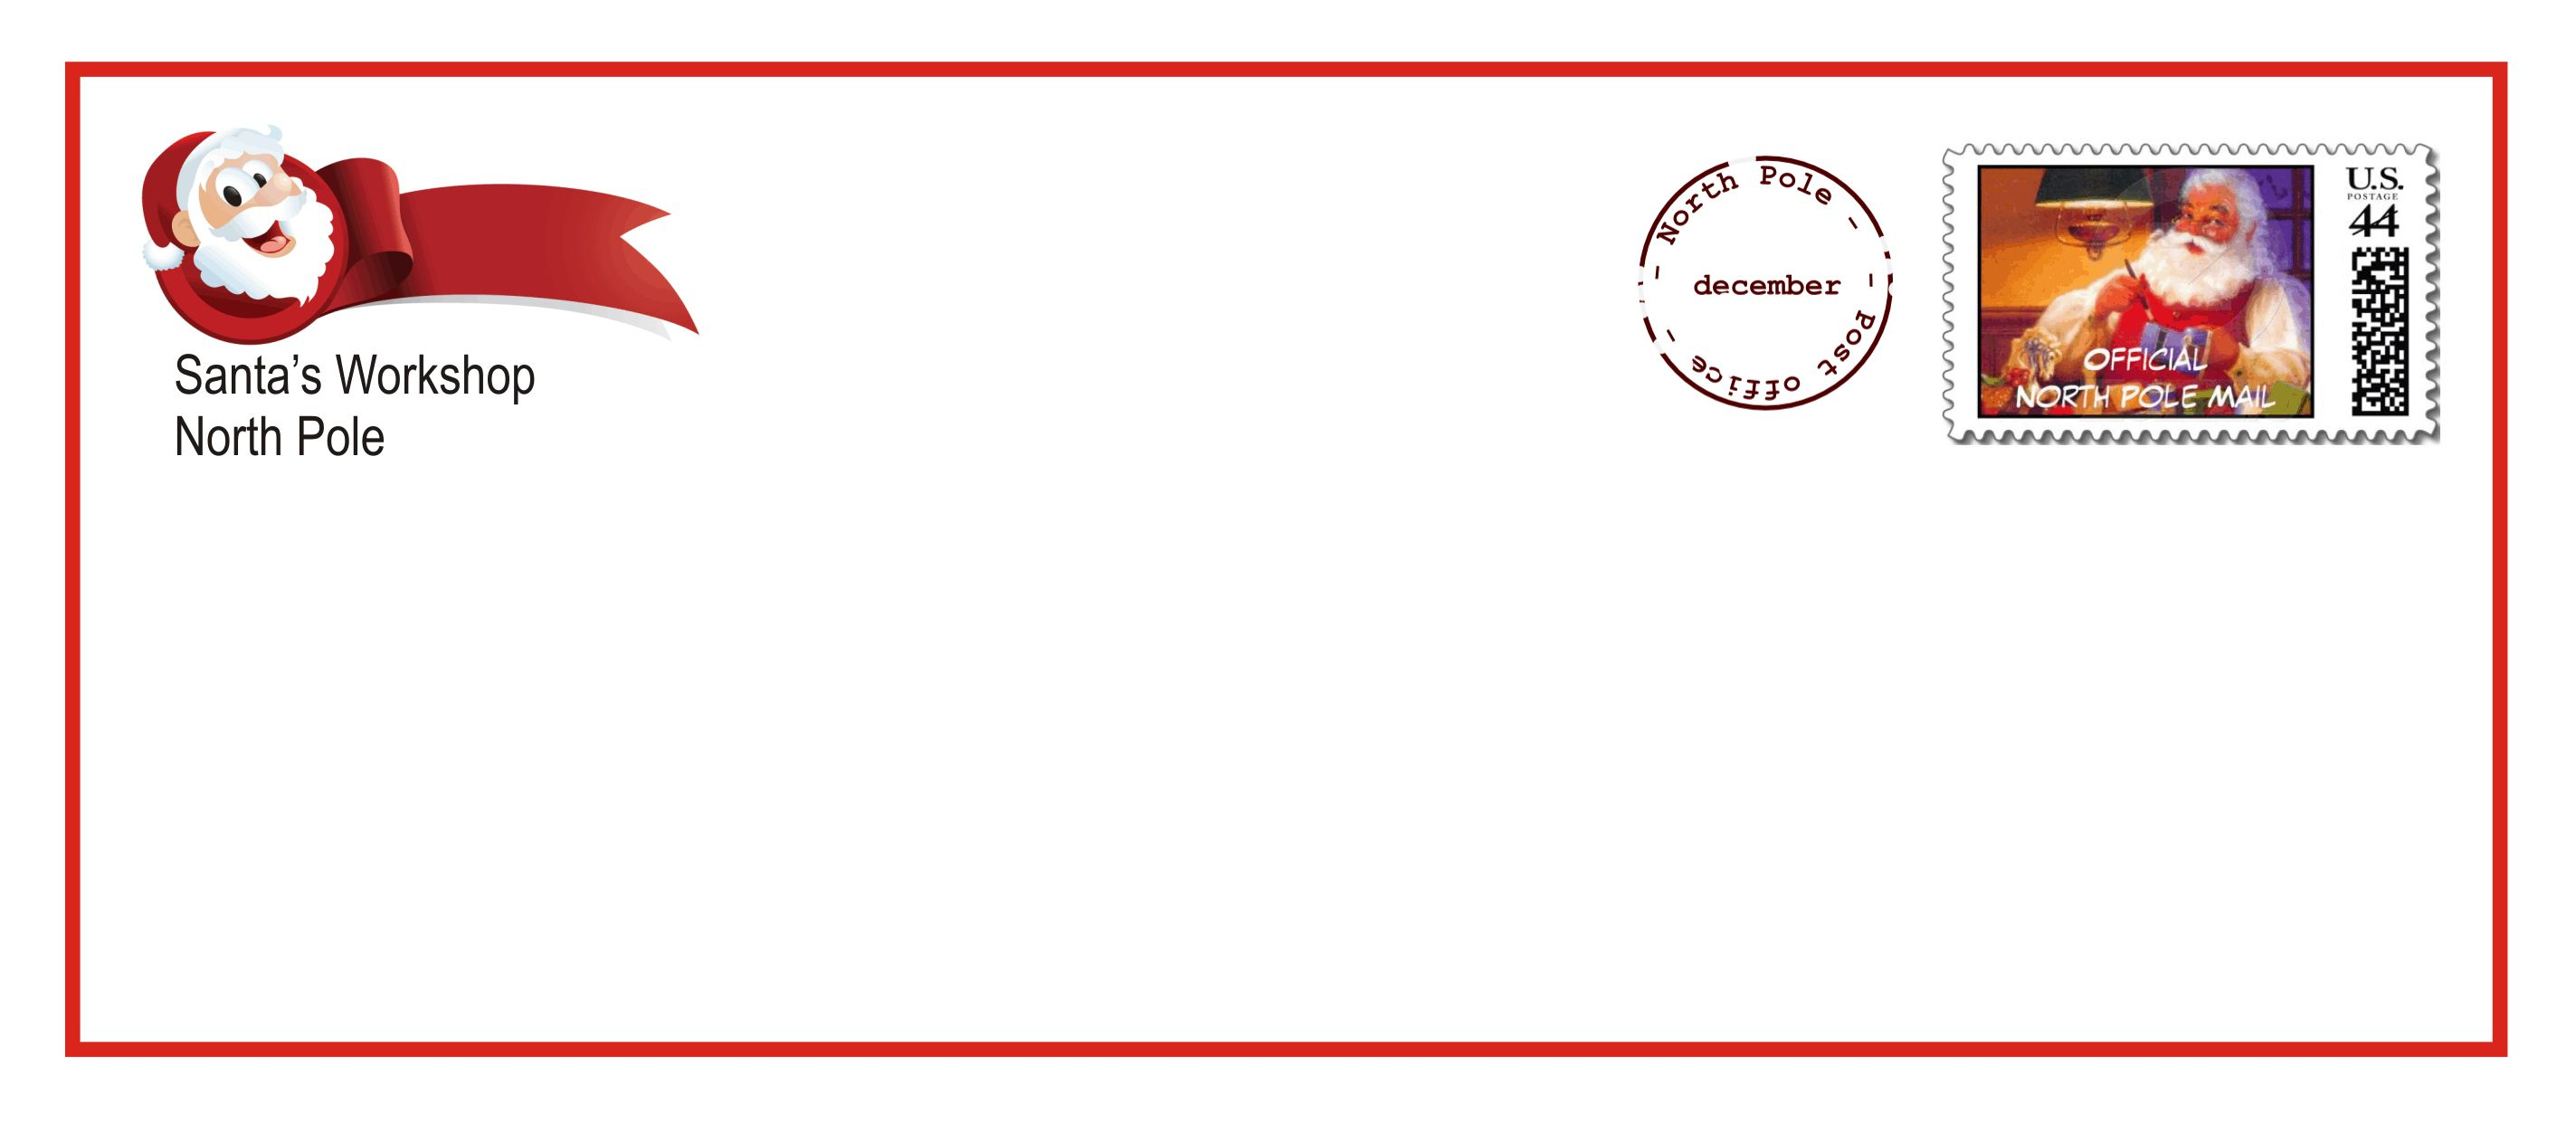 santa claus letter template example-Printable Santa letter envelopes that e with the upgraded letter and Nice List certificate on Free Letter from Santa Claus 8-i